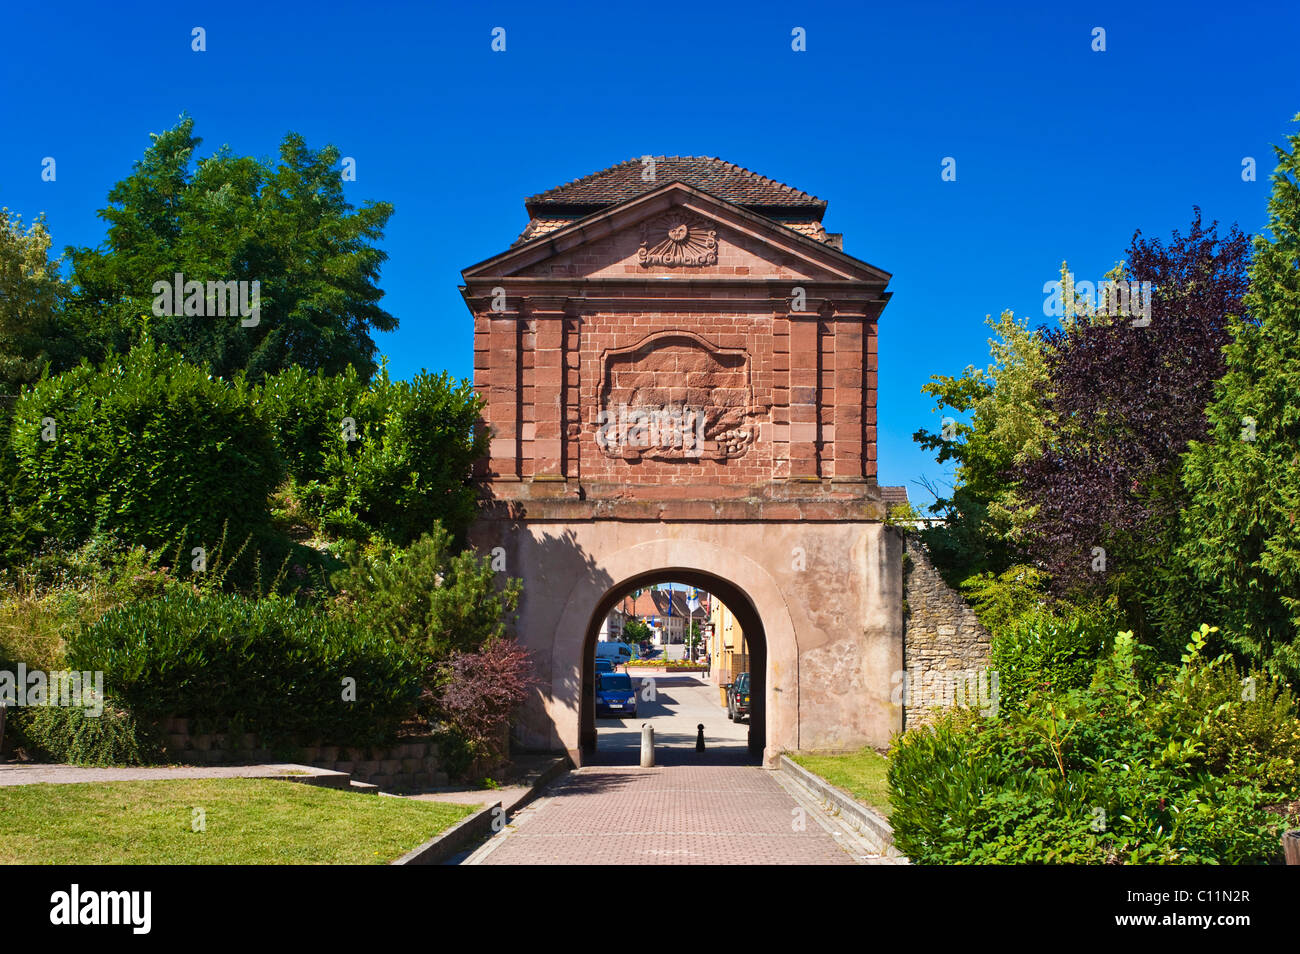 tour de bas porte de landau landauer tor gate tower with a sun stock photo royalty free image. Black Bedroom Furniture Sets. Home Design Ideas